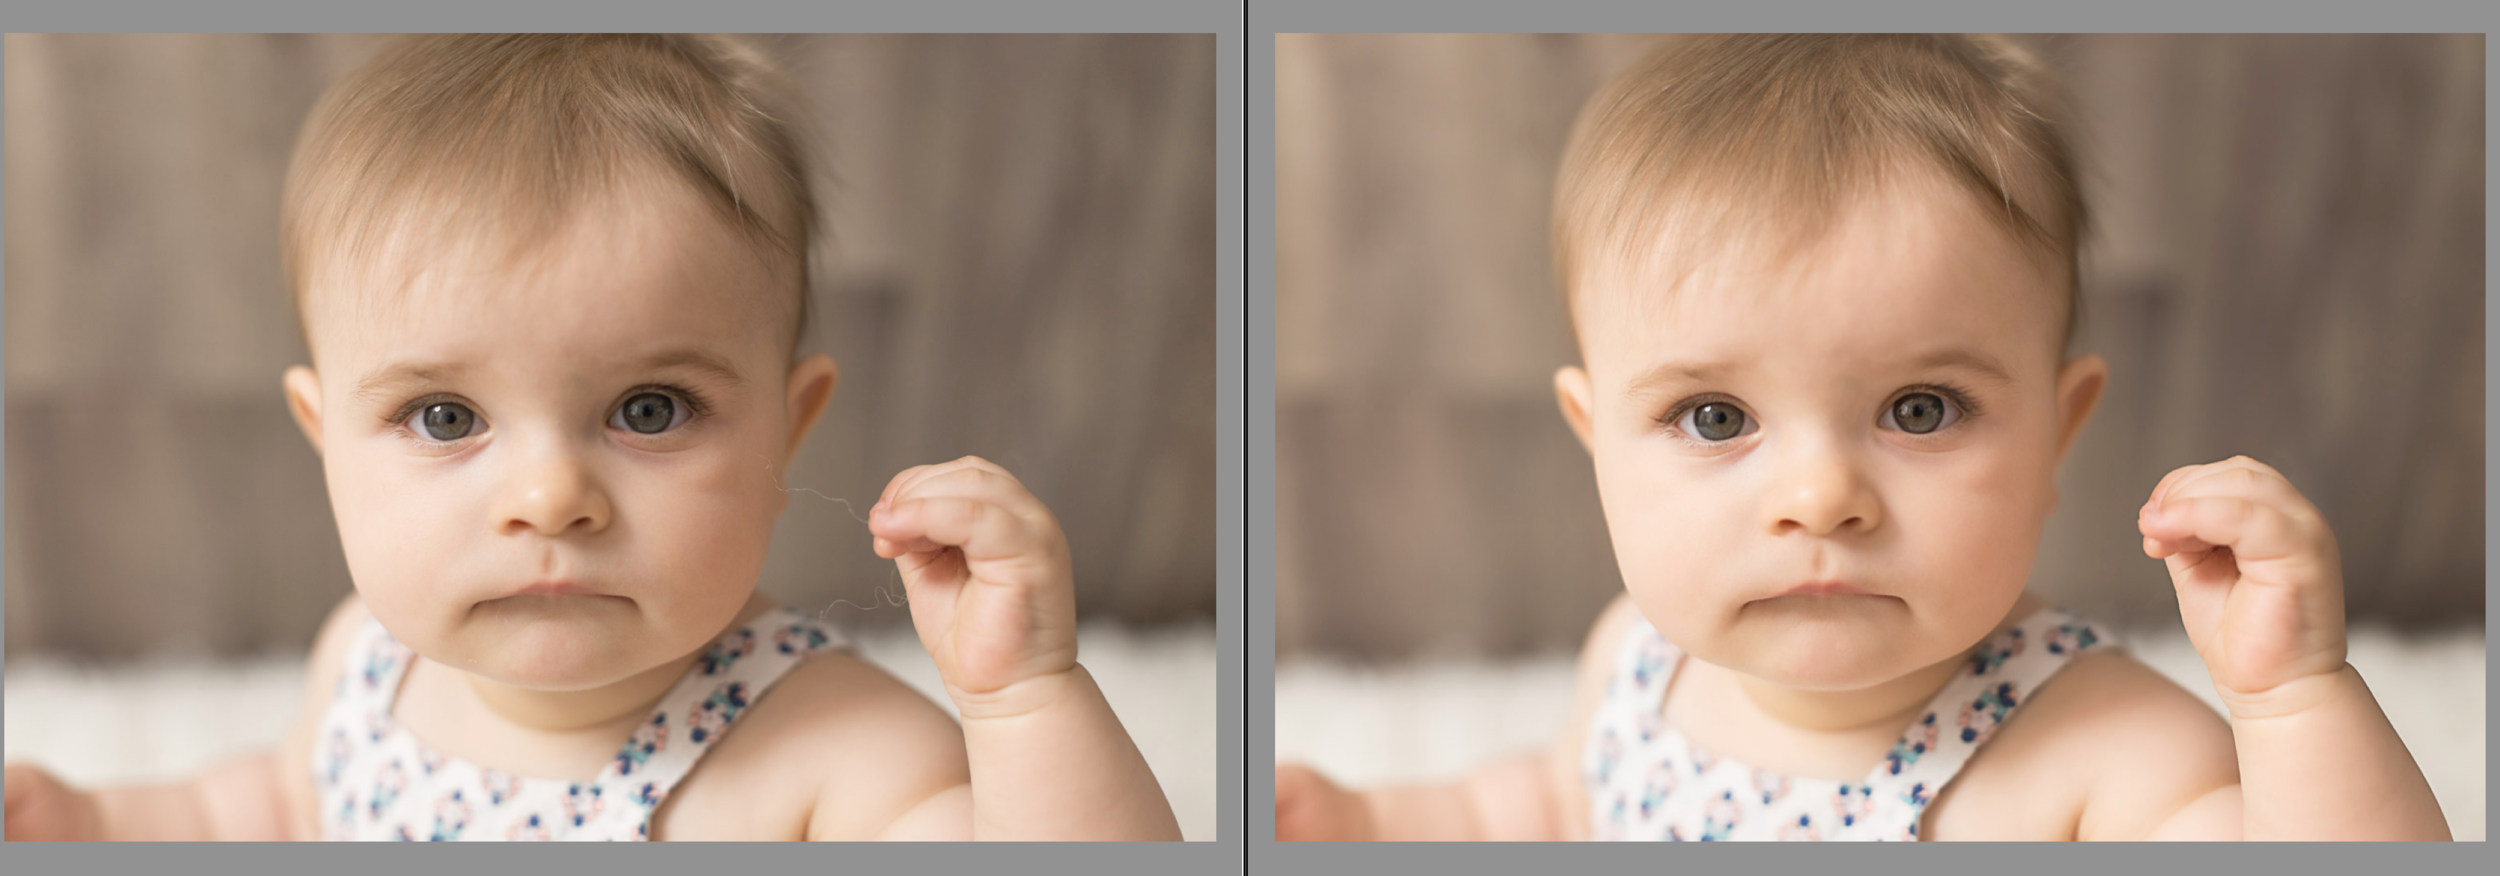 Peas in a Pod by Karin  Nagel, Perth Fremantle Newborn baby family Photographer